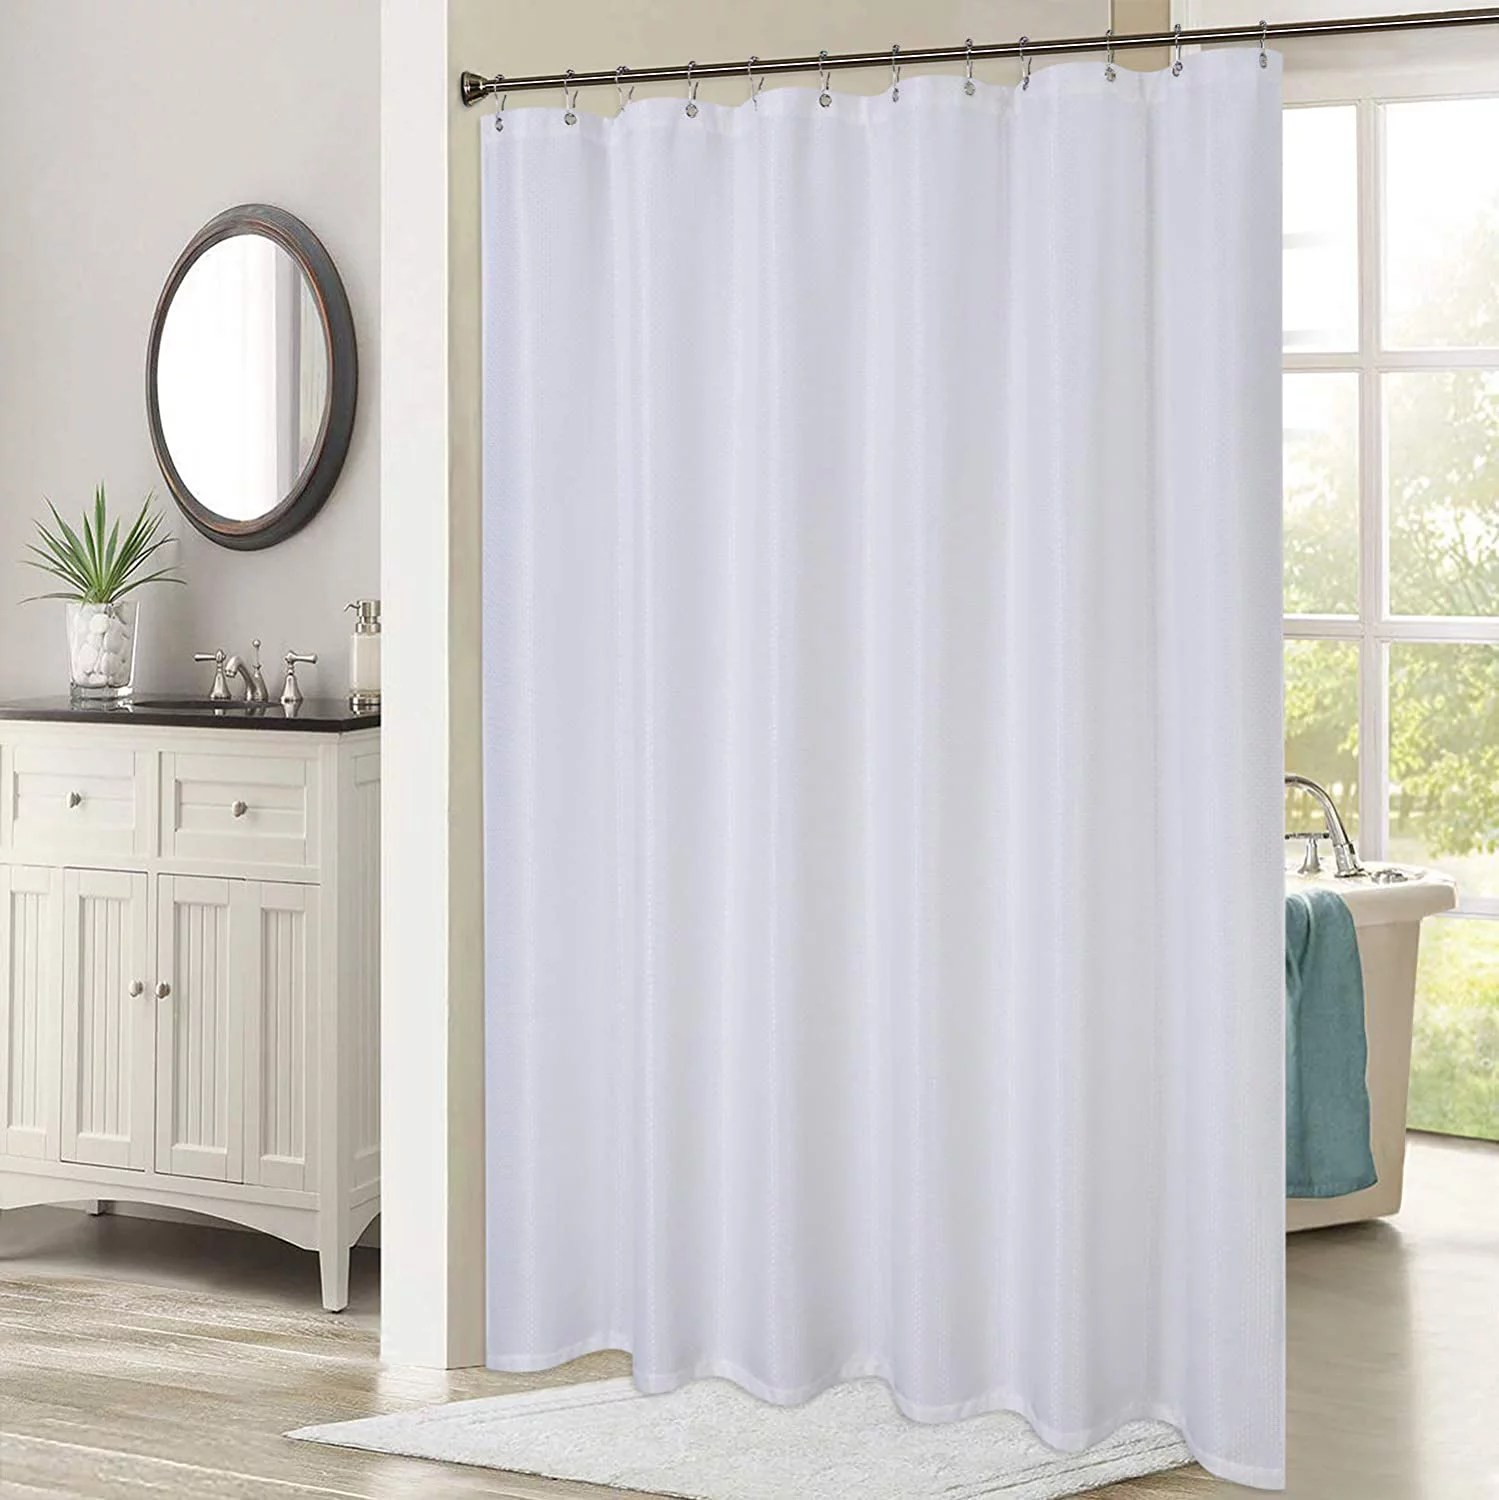 caromio shower curtains 78 inches long waffle weave fabric shower curtain heavy duty thick extra long for bathroom 72 x 78 white